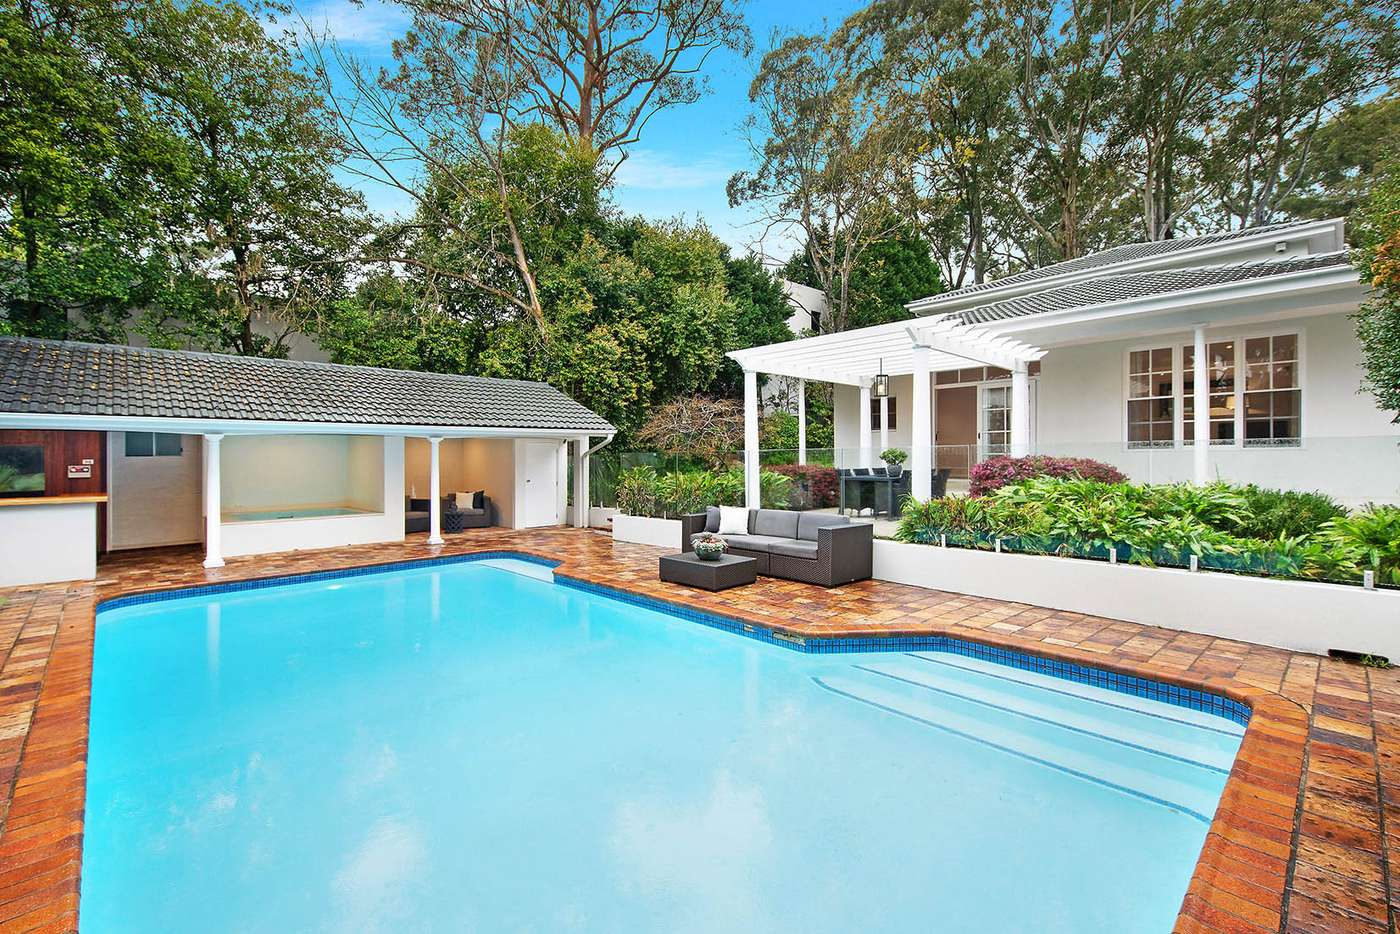 Main view of Homely house listing, 19 Lindsay Close, Pymble NSW 2073